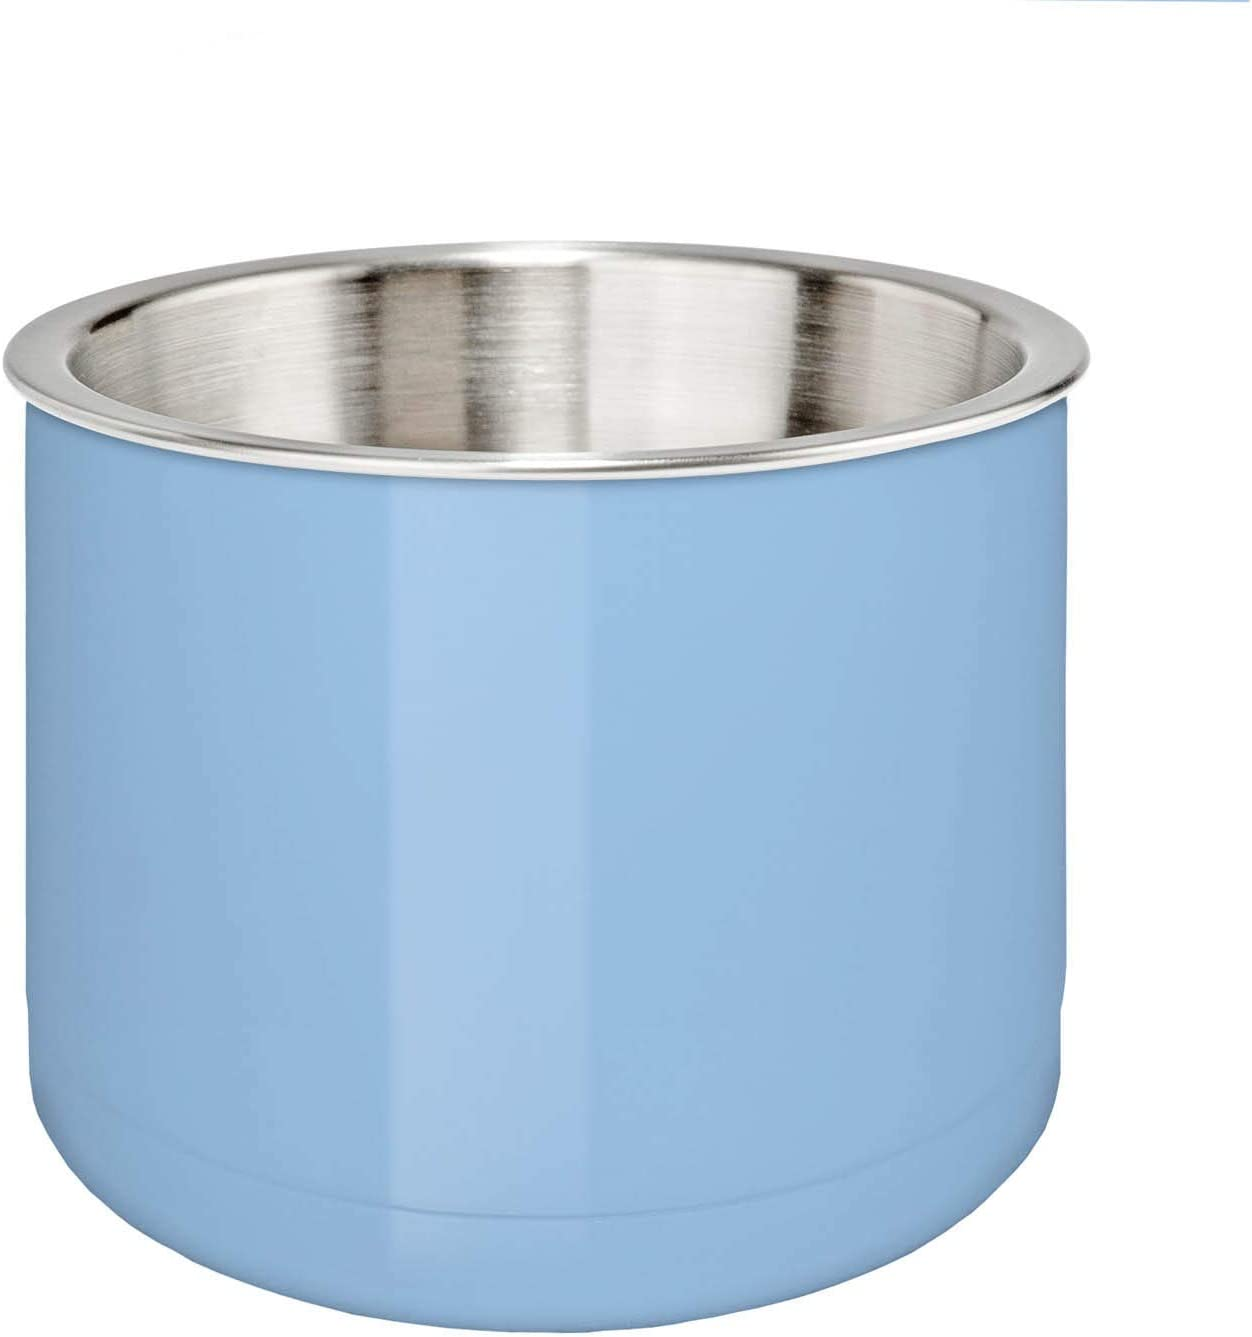 True North Stainless Steel Insulated Serving Bowl + Dip Chiller, Keeps Food and Beverages Hot or Cold Up To 24 Hours, 35 oz, Sport Light Blue